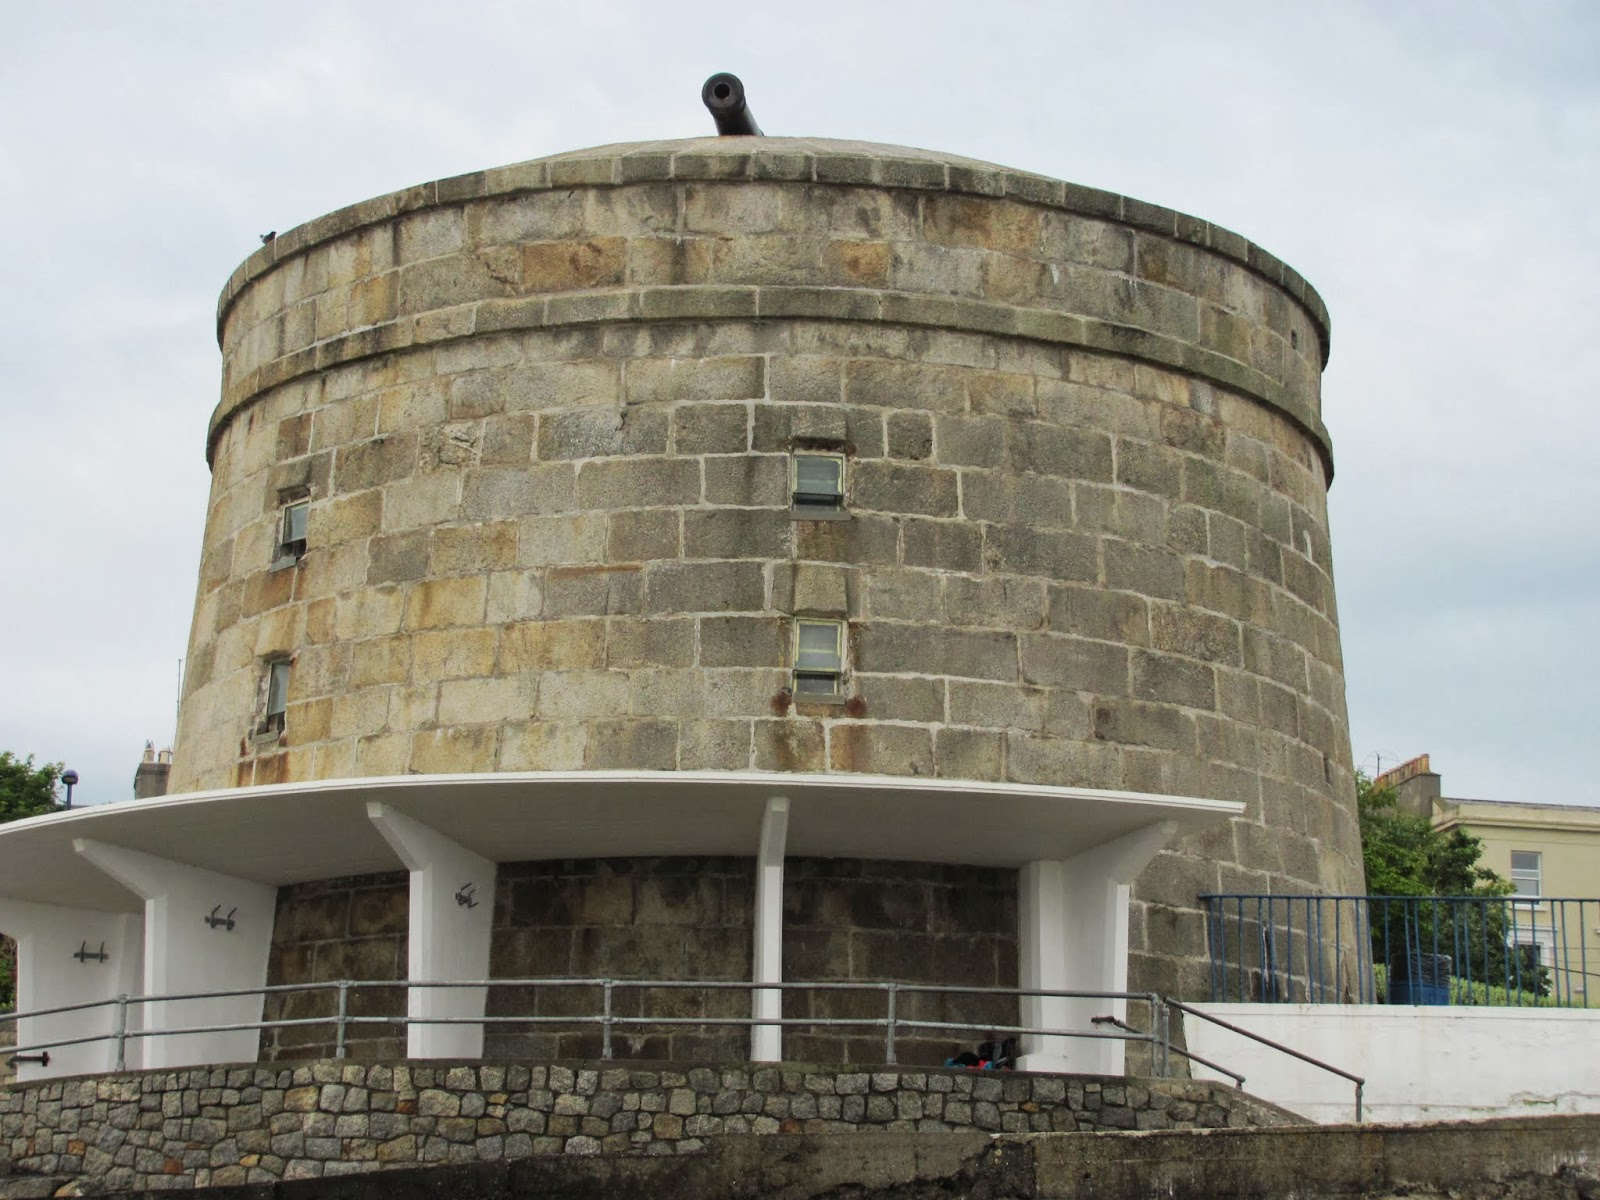 A cylindrical tower with a cannon on top protects the bay from historical marauders at Seapoint Beach, Dublin, Ireland